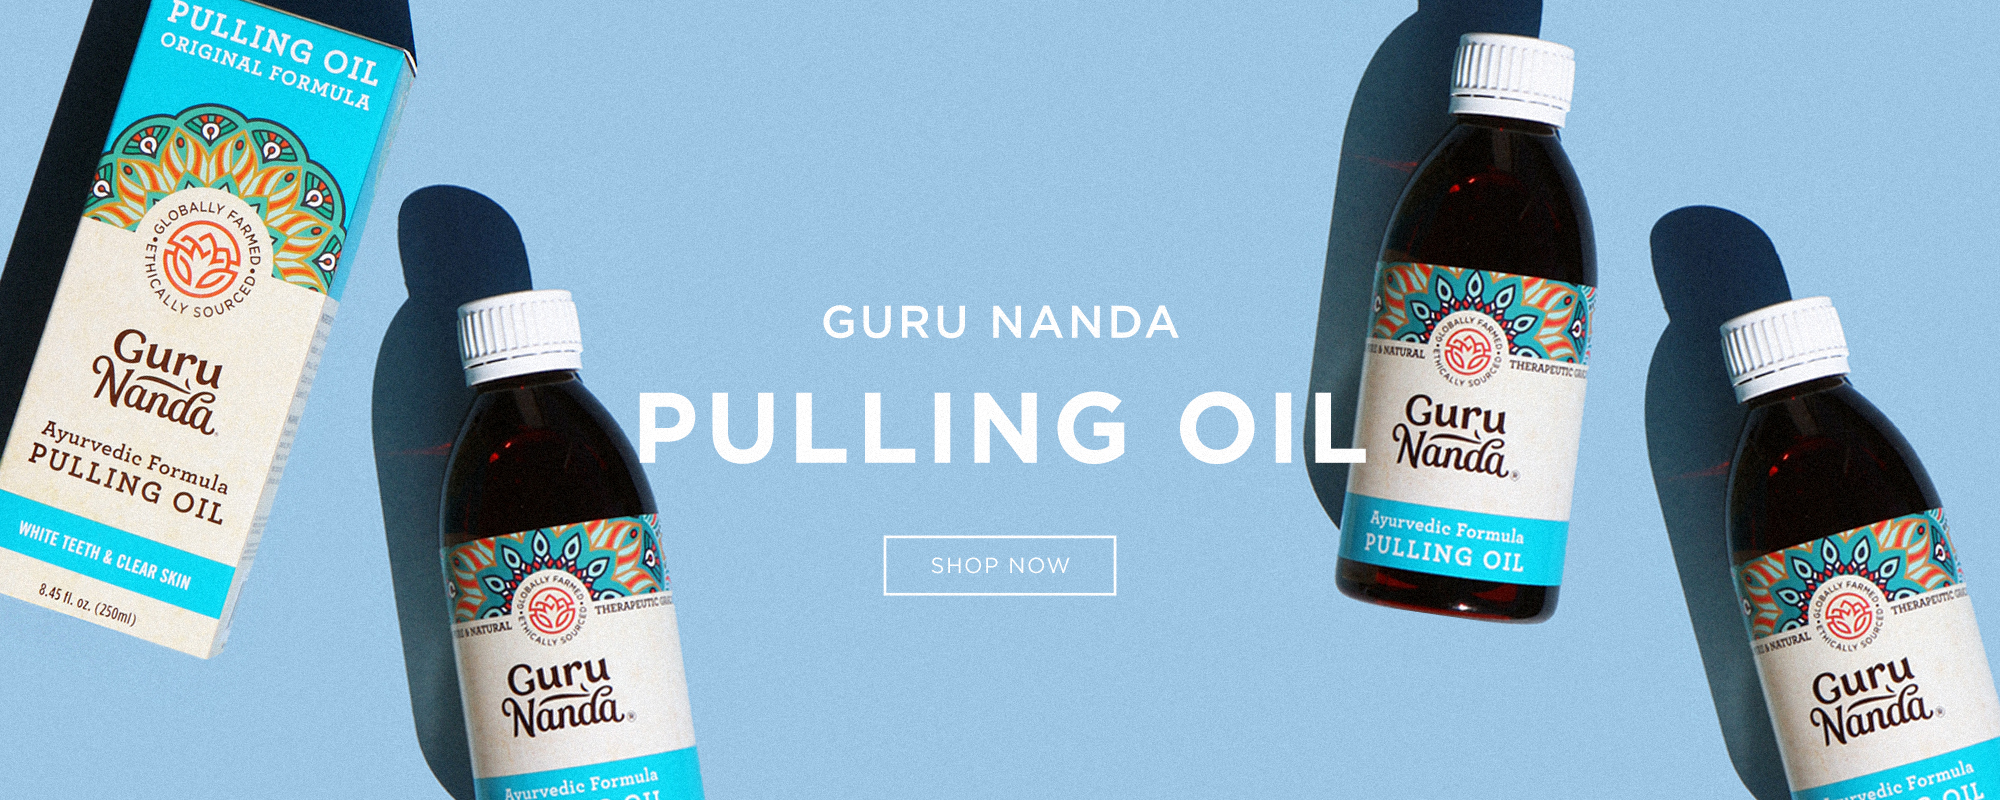 Guru Nanda Pulling Oil - 3 bottles and package laying flat on a blue background. Text reads GURUNANDA PULLING OIL - SHOP NOW